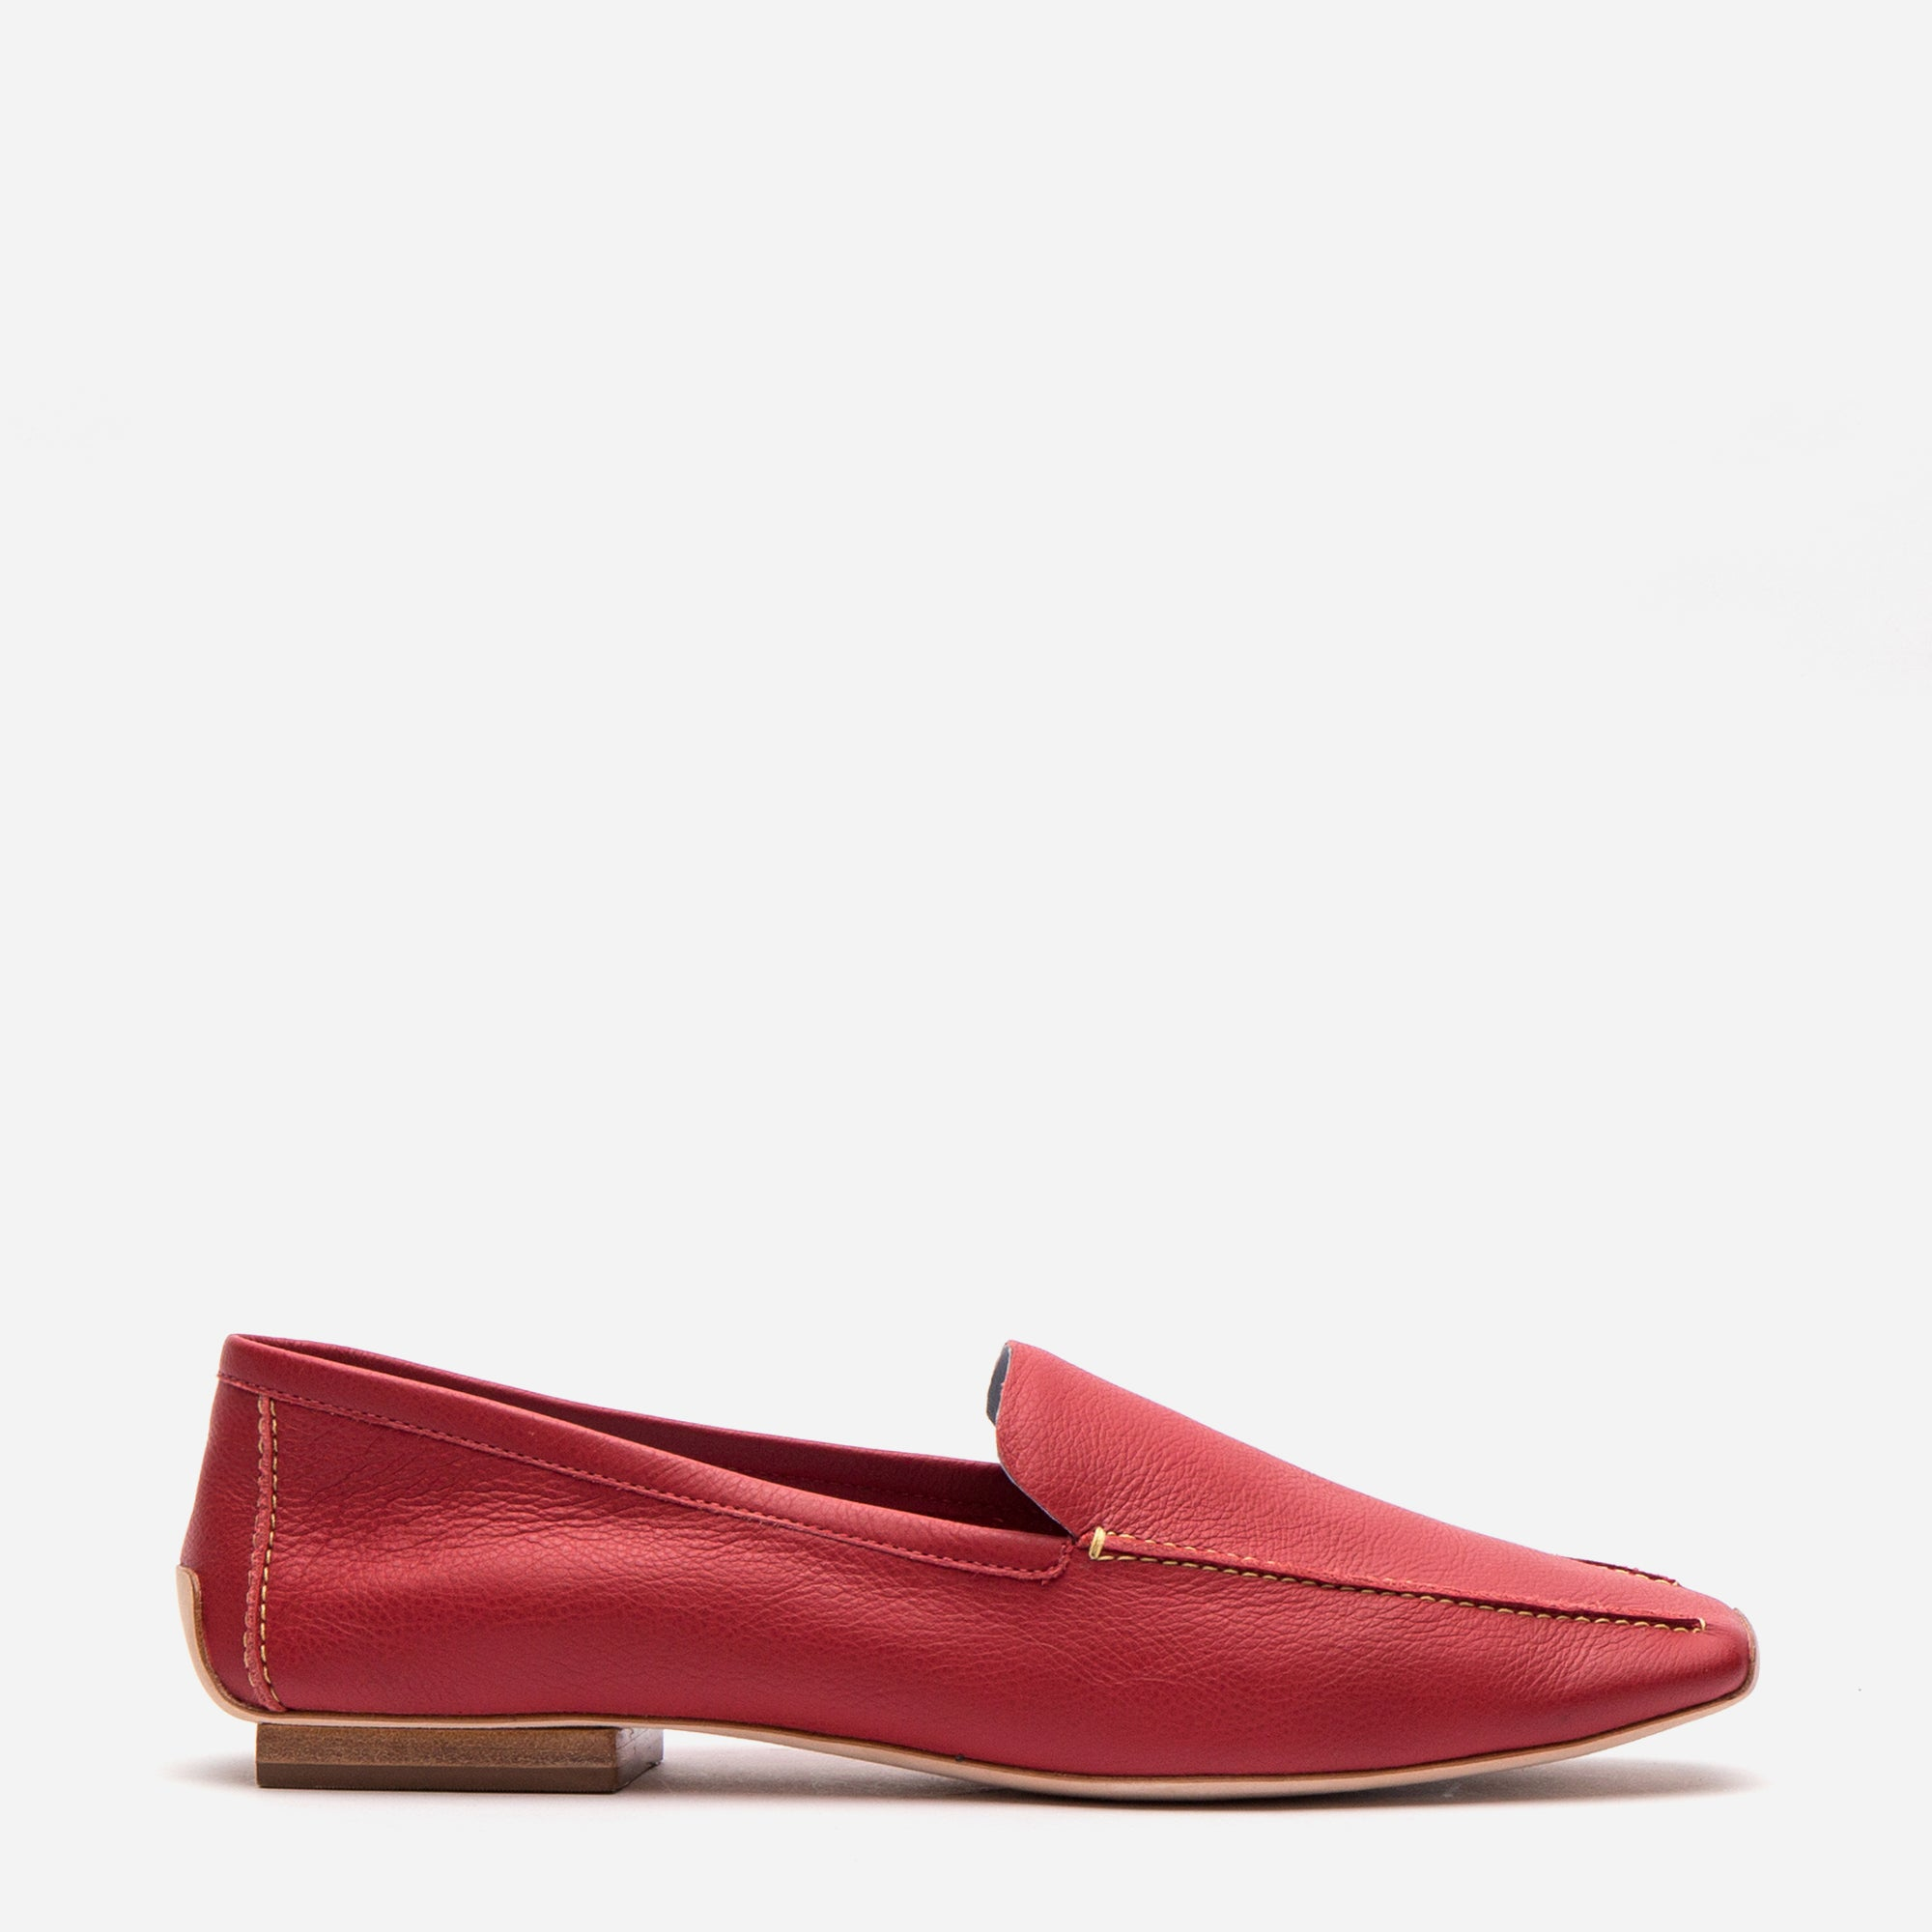 Elyce Loafer Red Leather - Frances Valentine